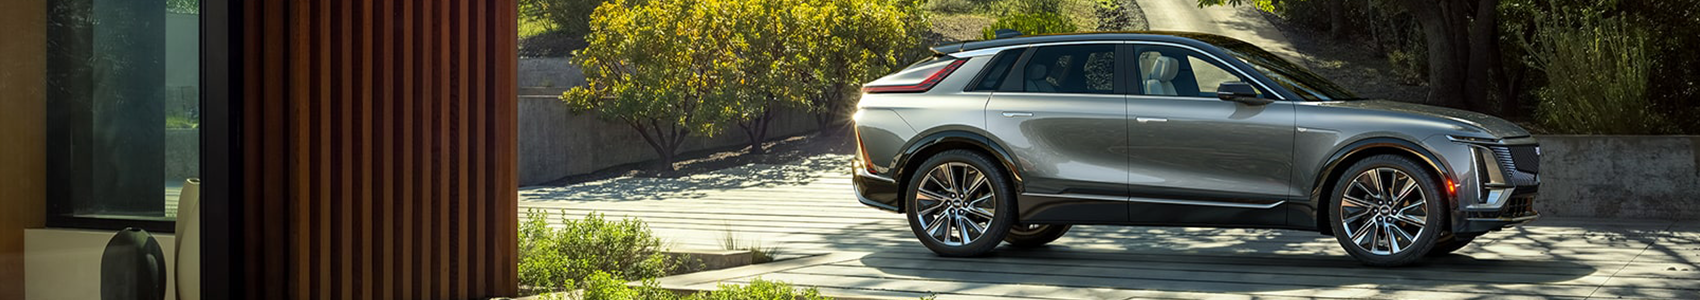 Choose your Cadillac Model to get started